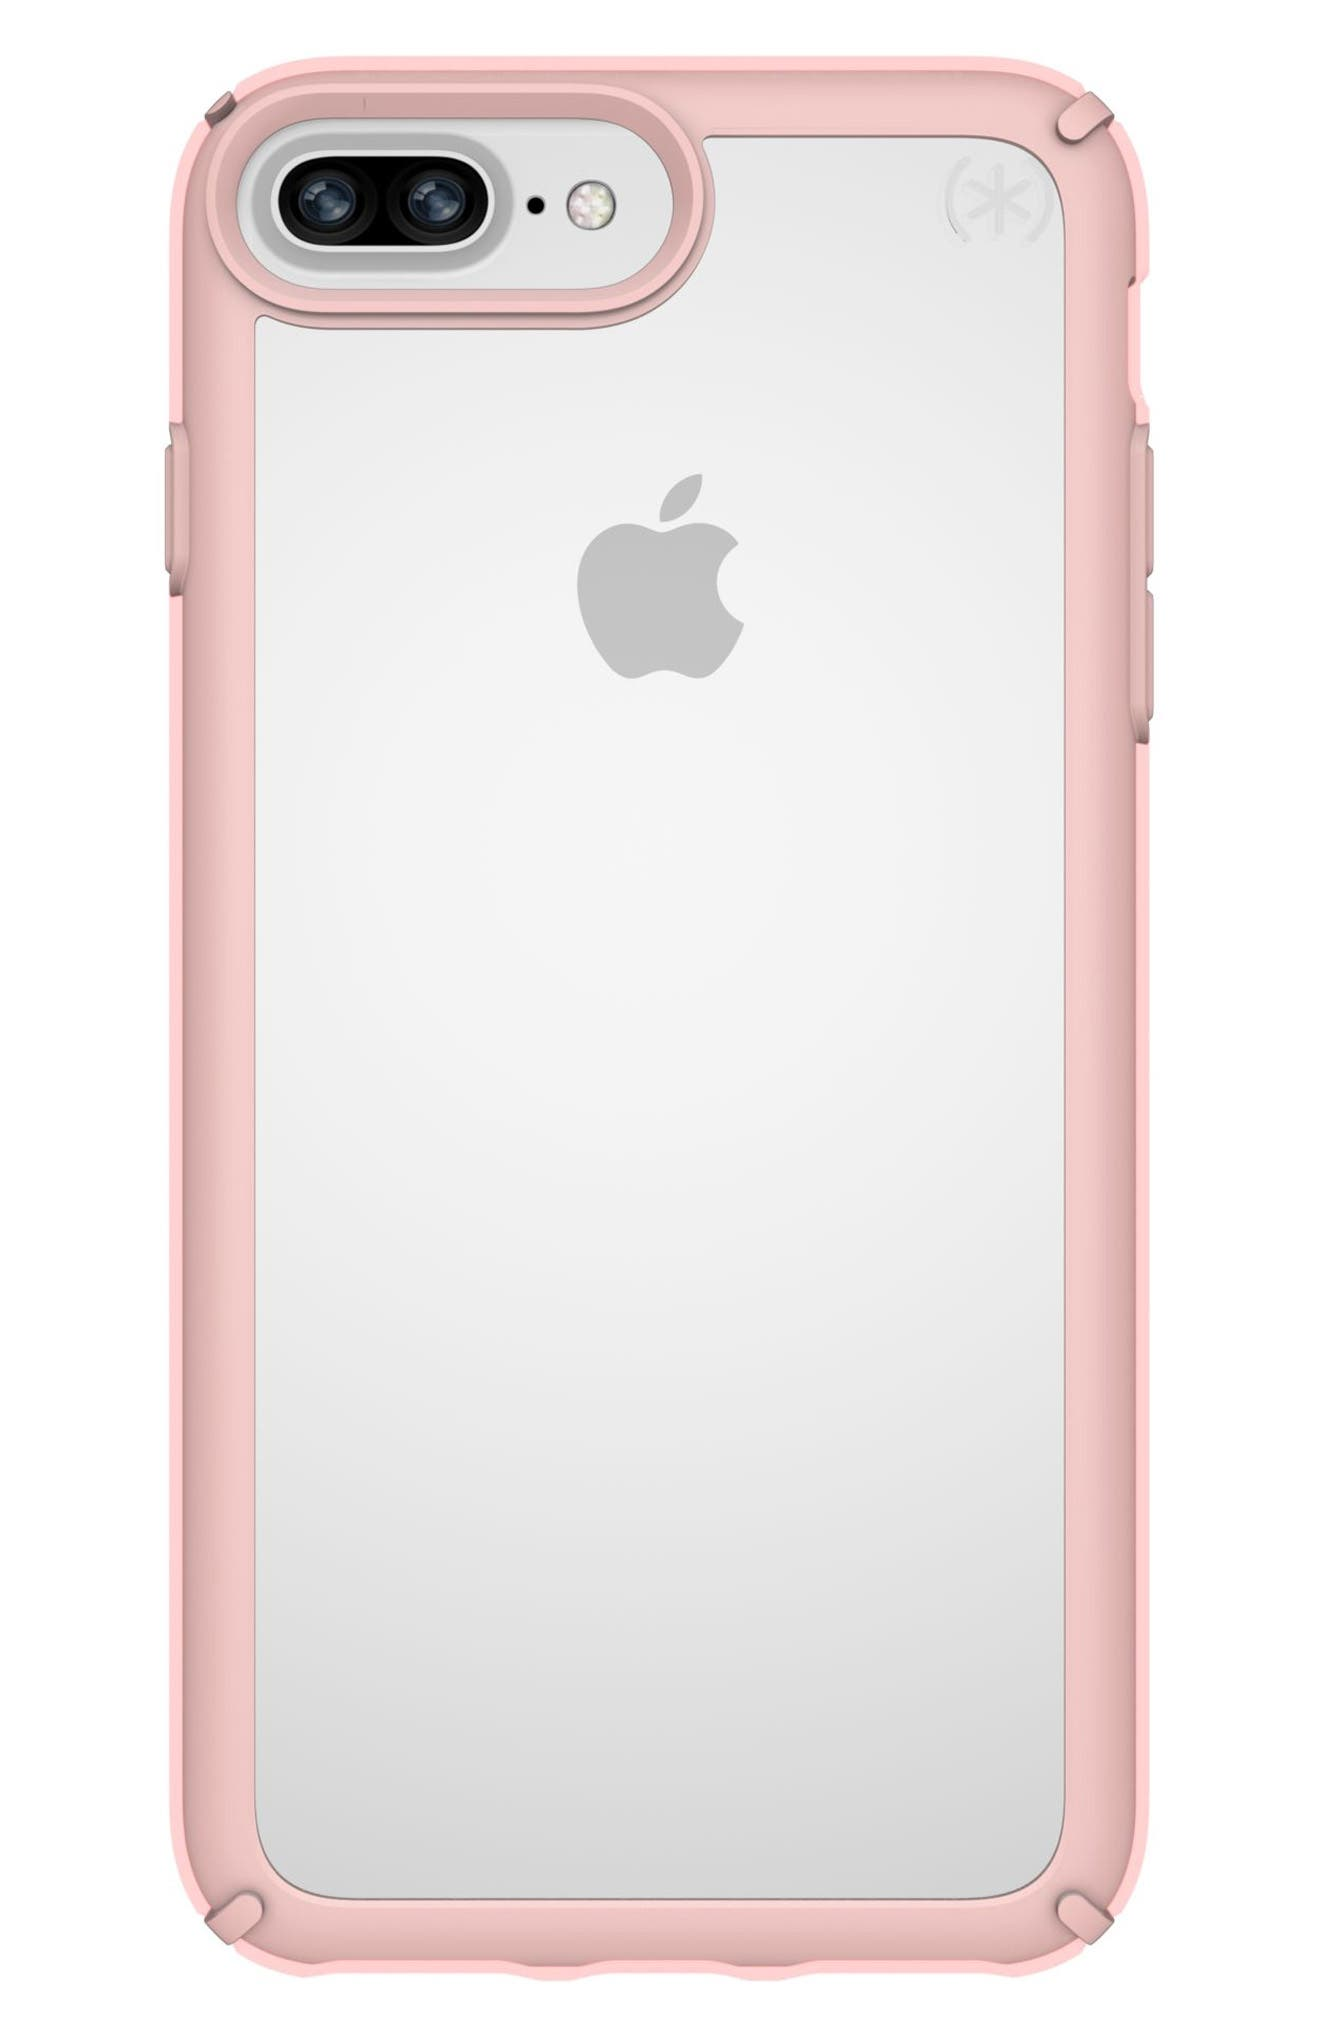 iPhone 6/6s/7/8 Plus Case,                             Main thumbnail 1, color,                             CLEAR/ ROSE GOLD